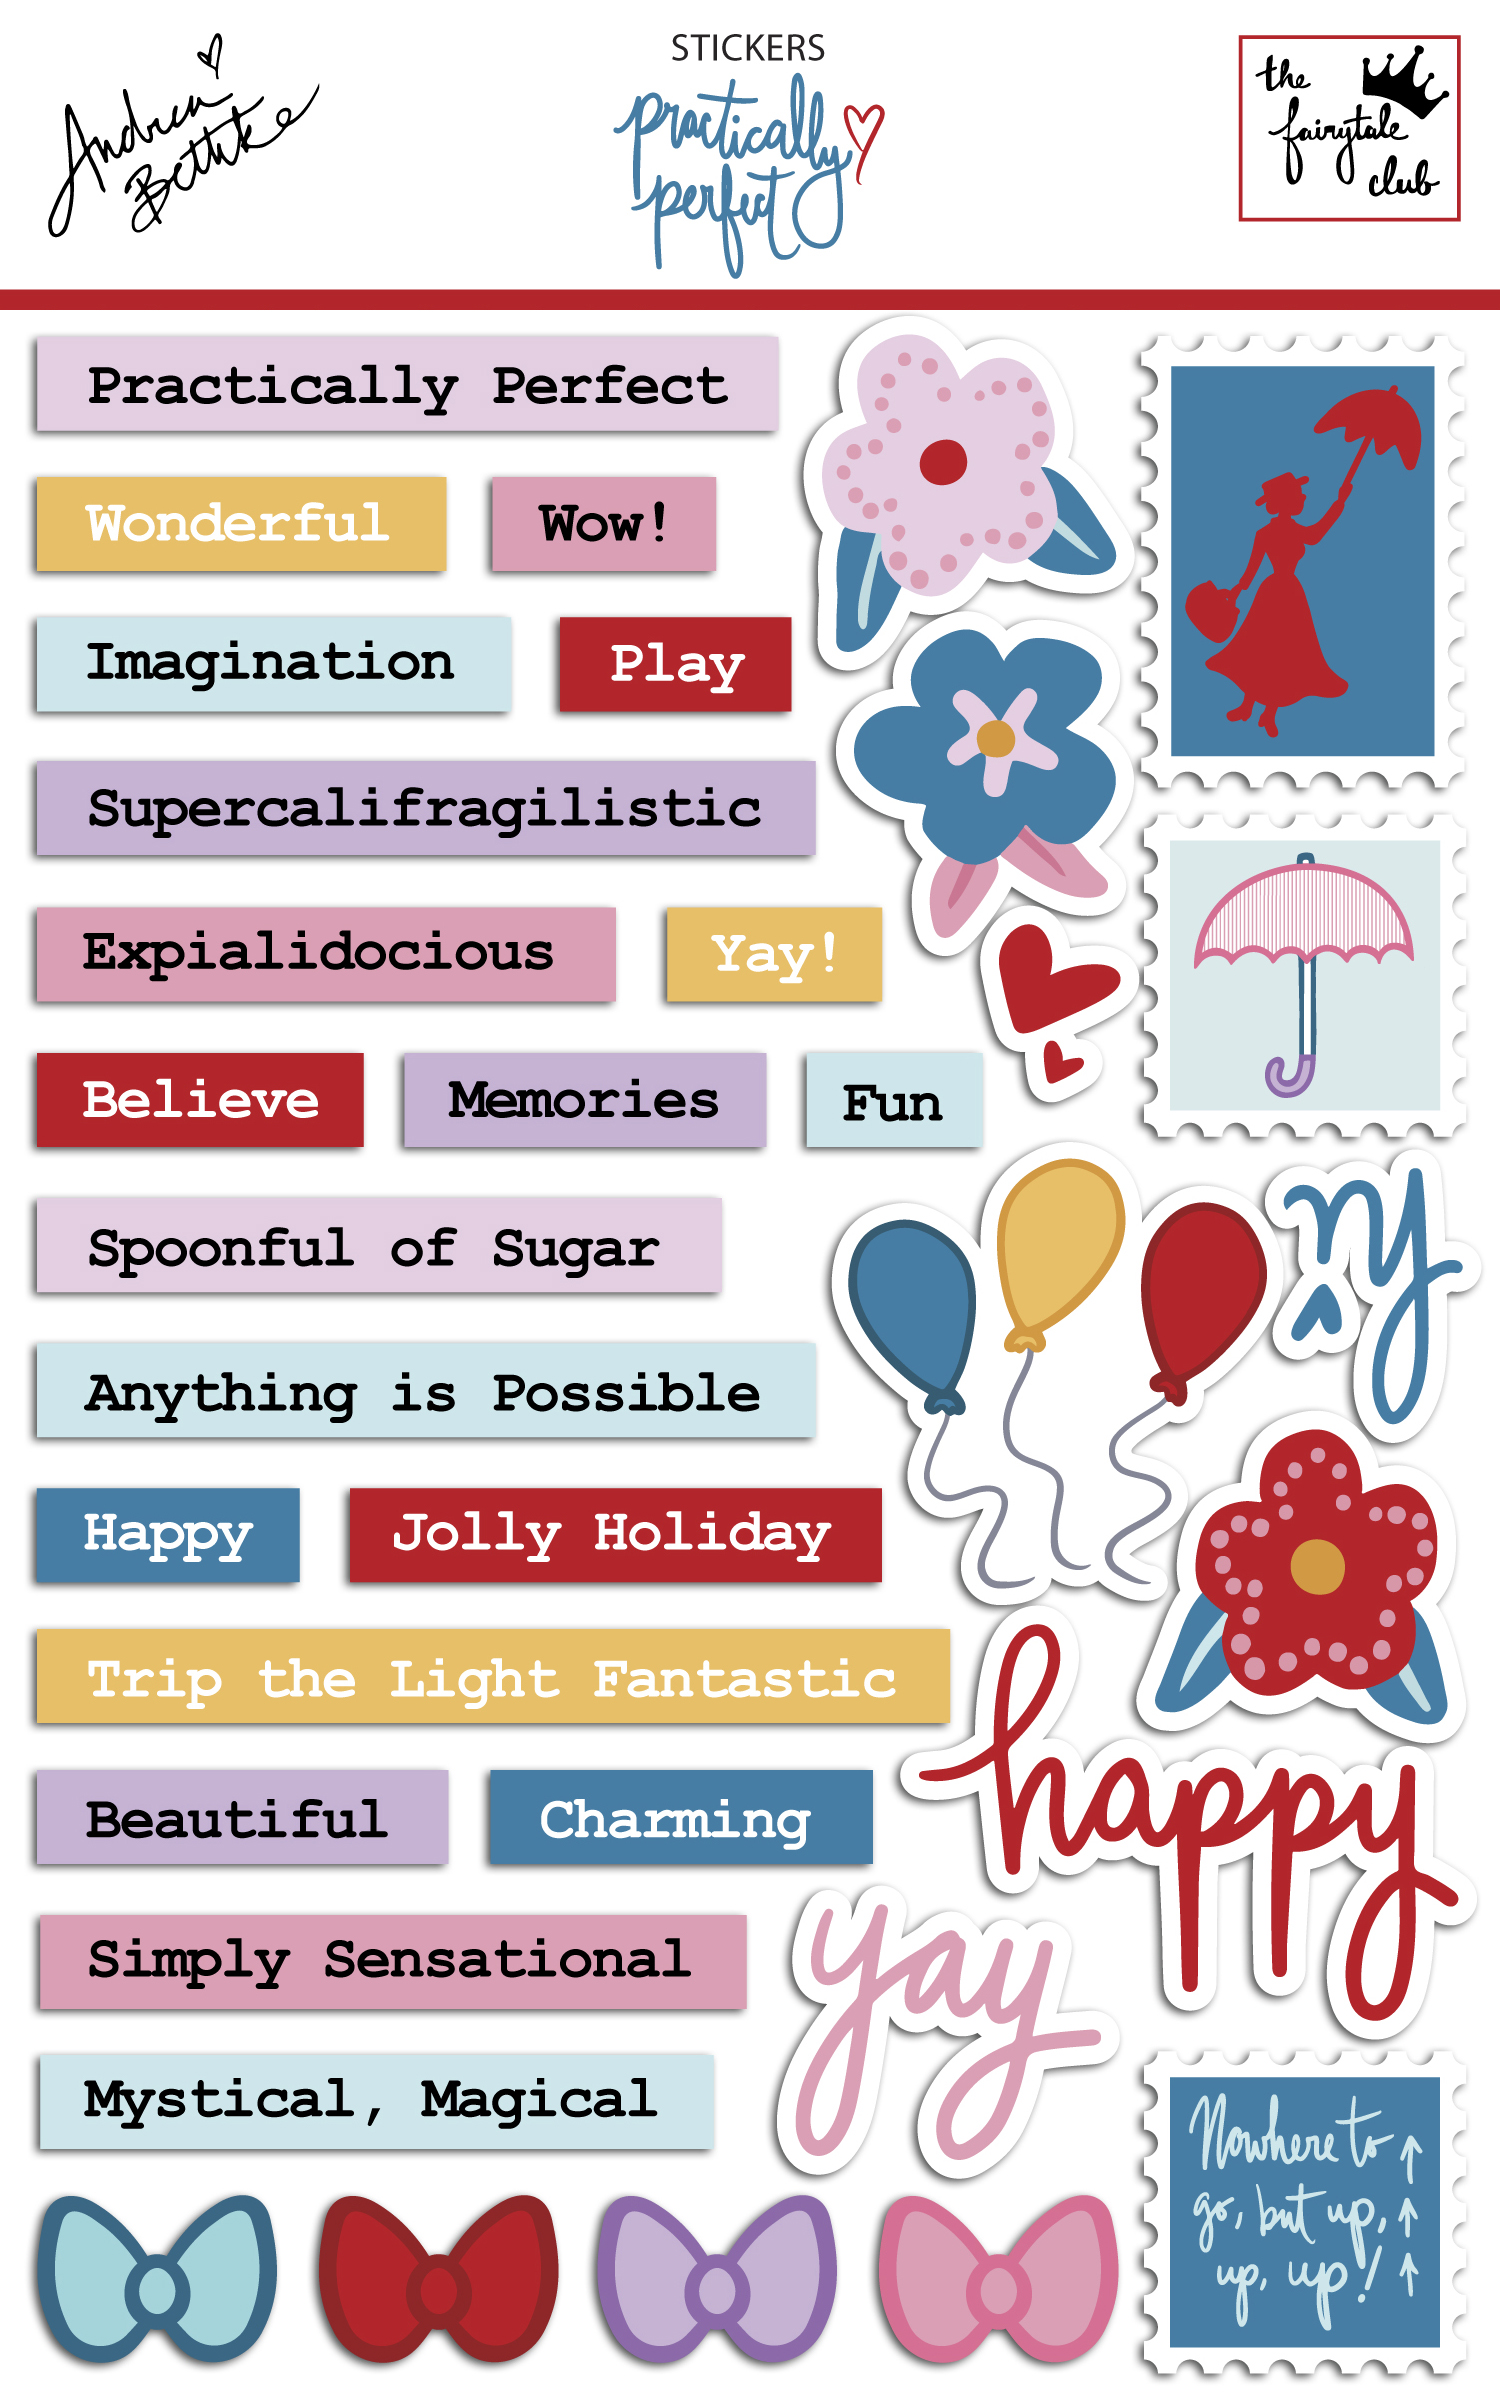 Practically Perfect - Sticker Sheet total package.jpg